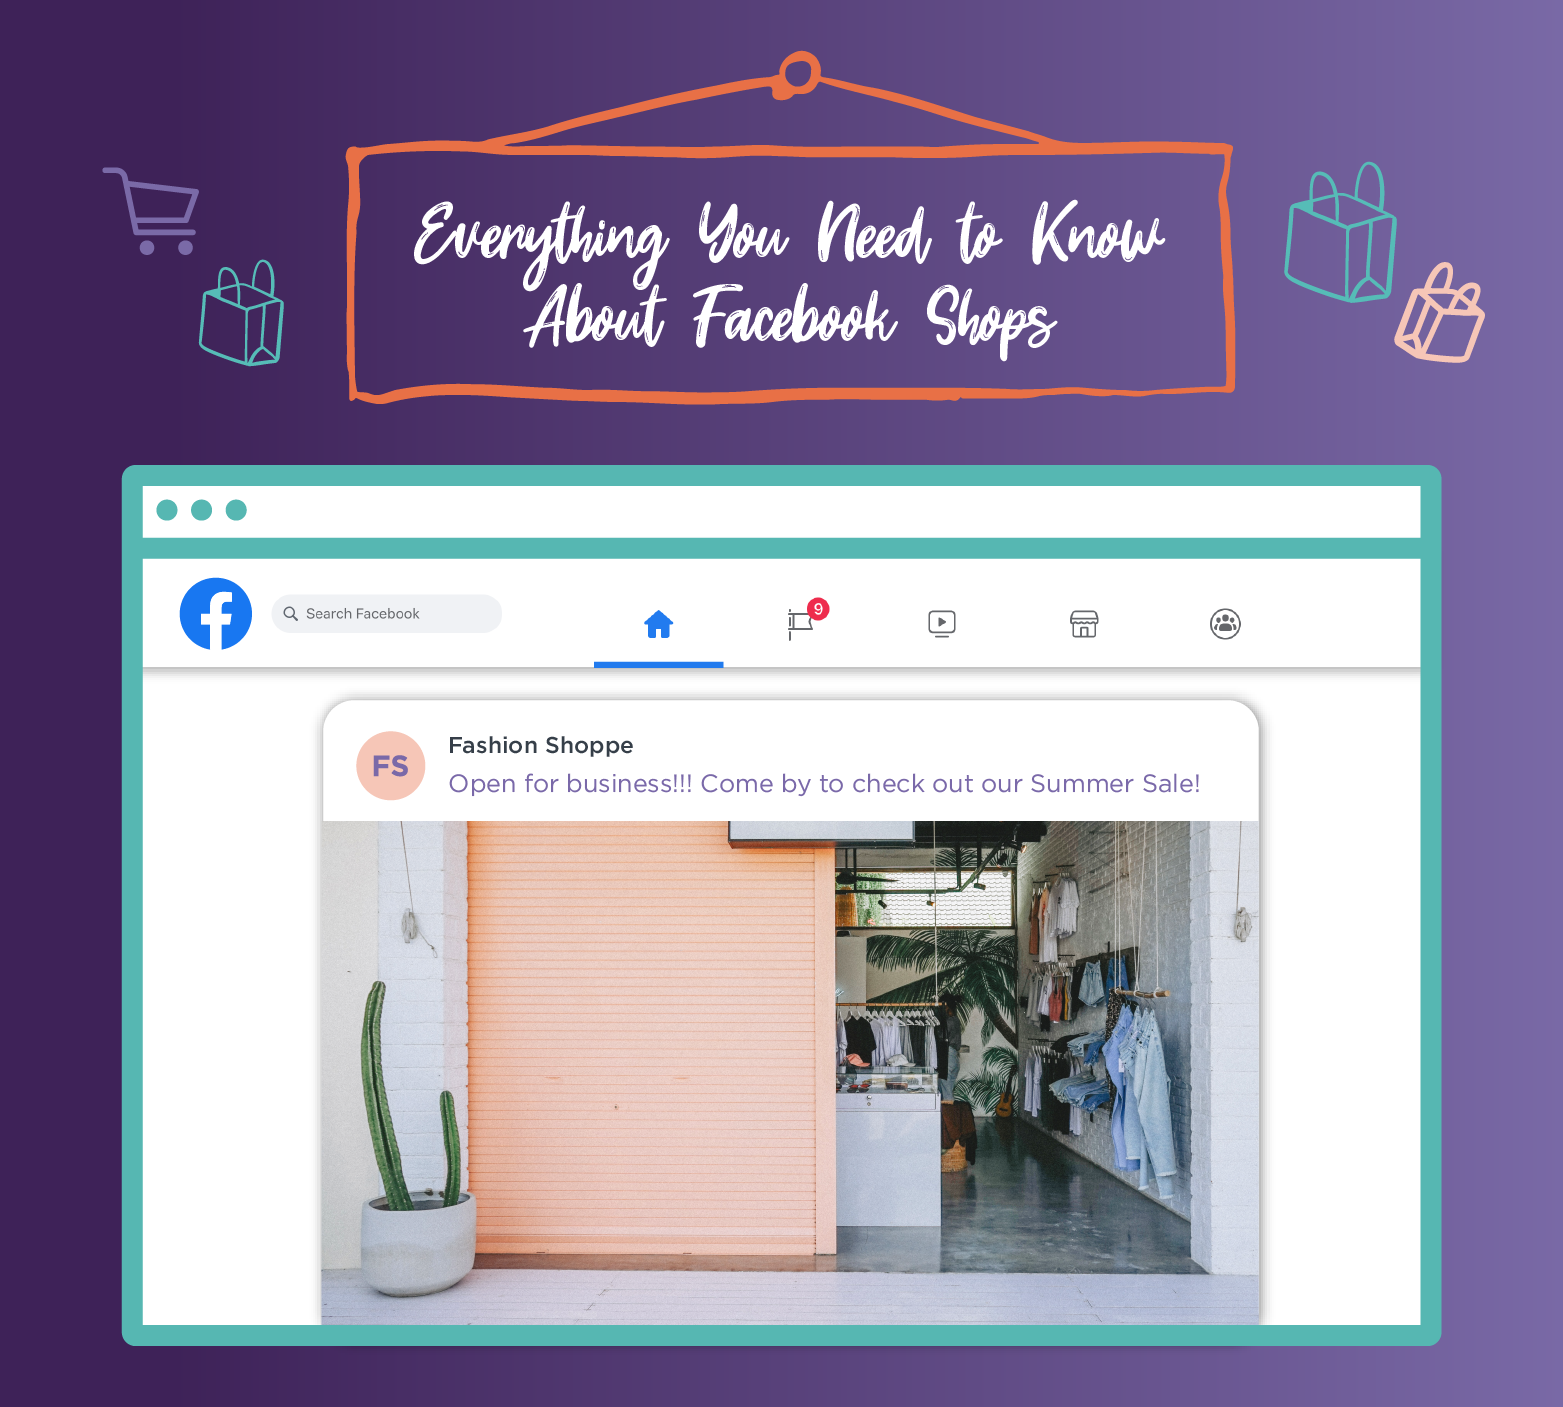 Everything You Need to Know About Facebook Shops